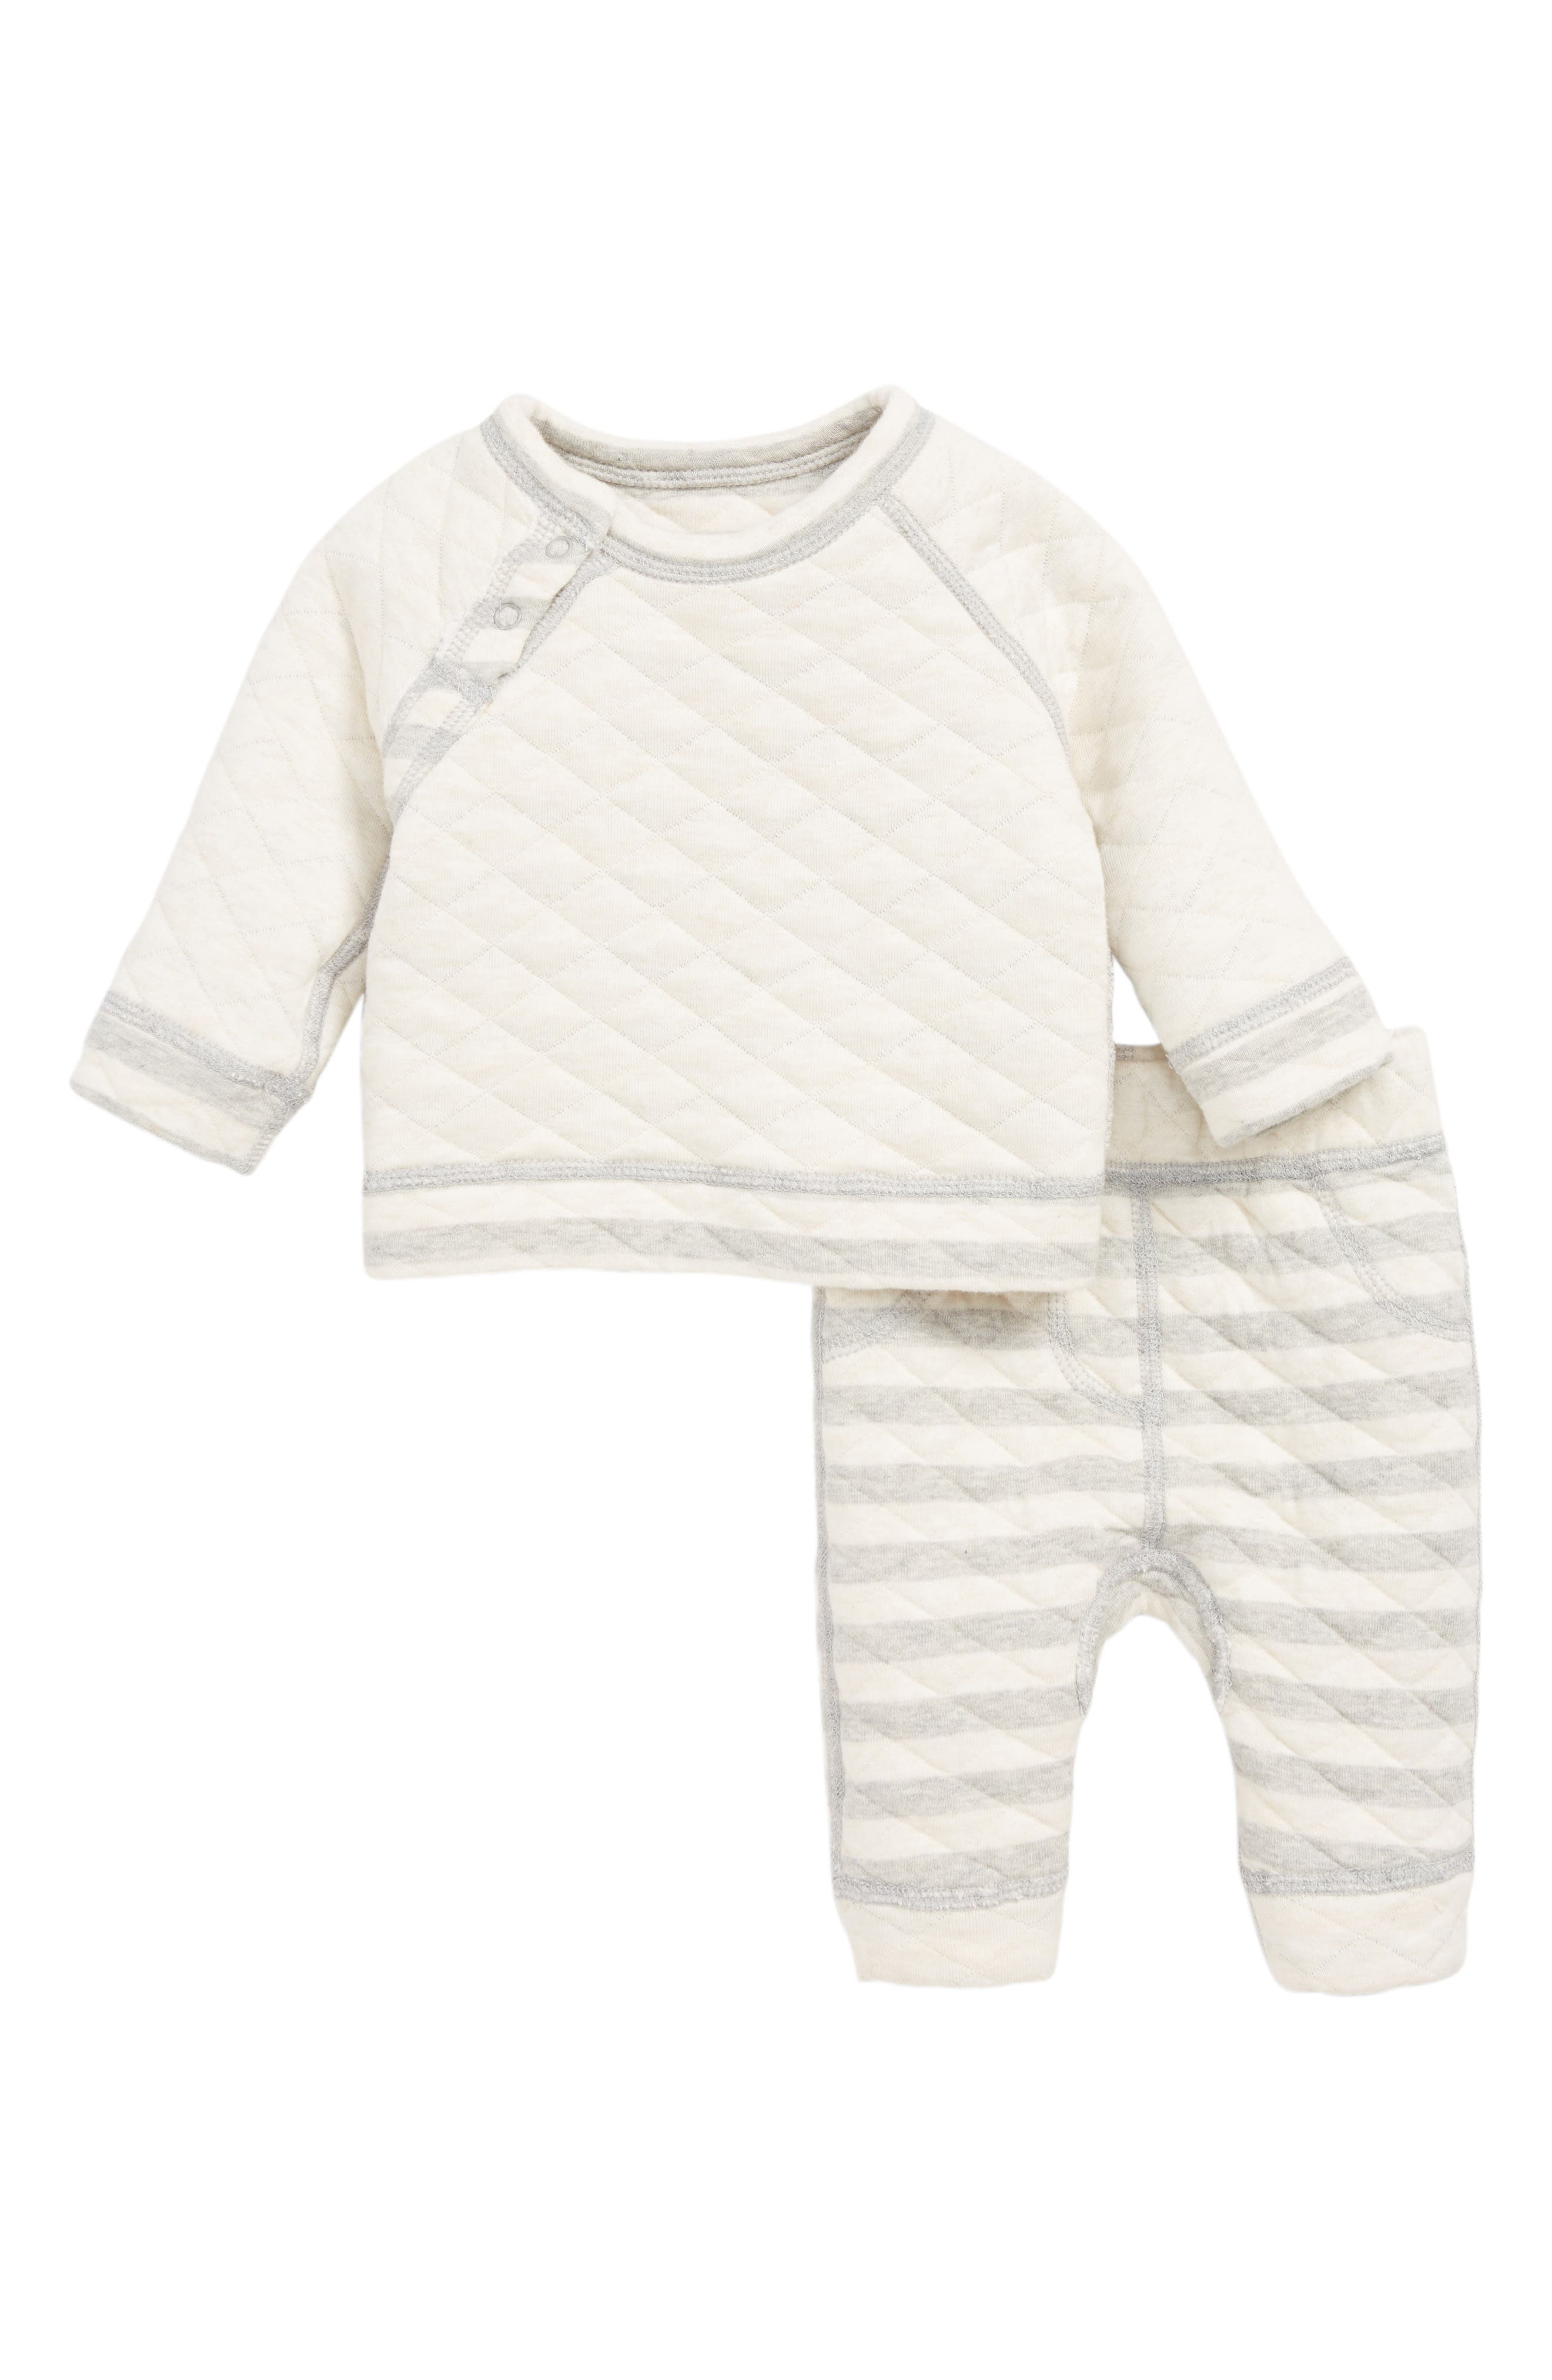 Quilted Top & Pants Set,                             Alternate thumbnail 2, color,                             050